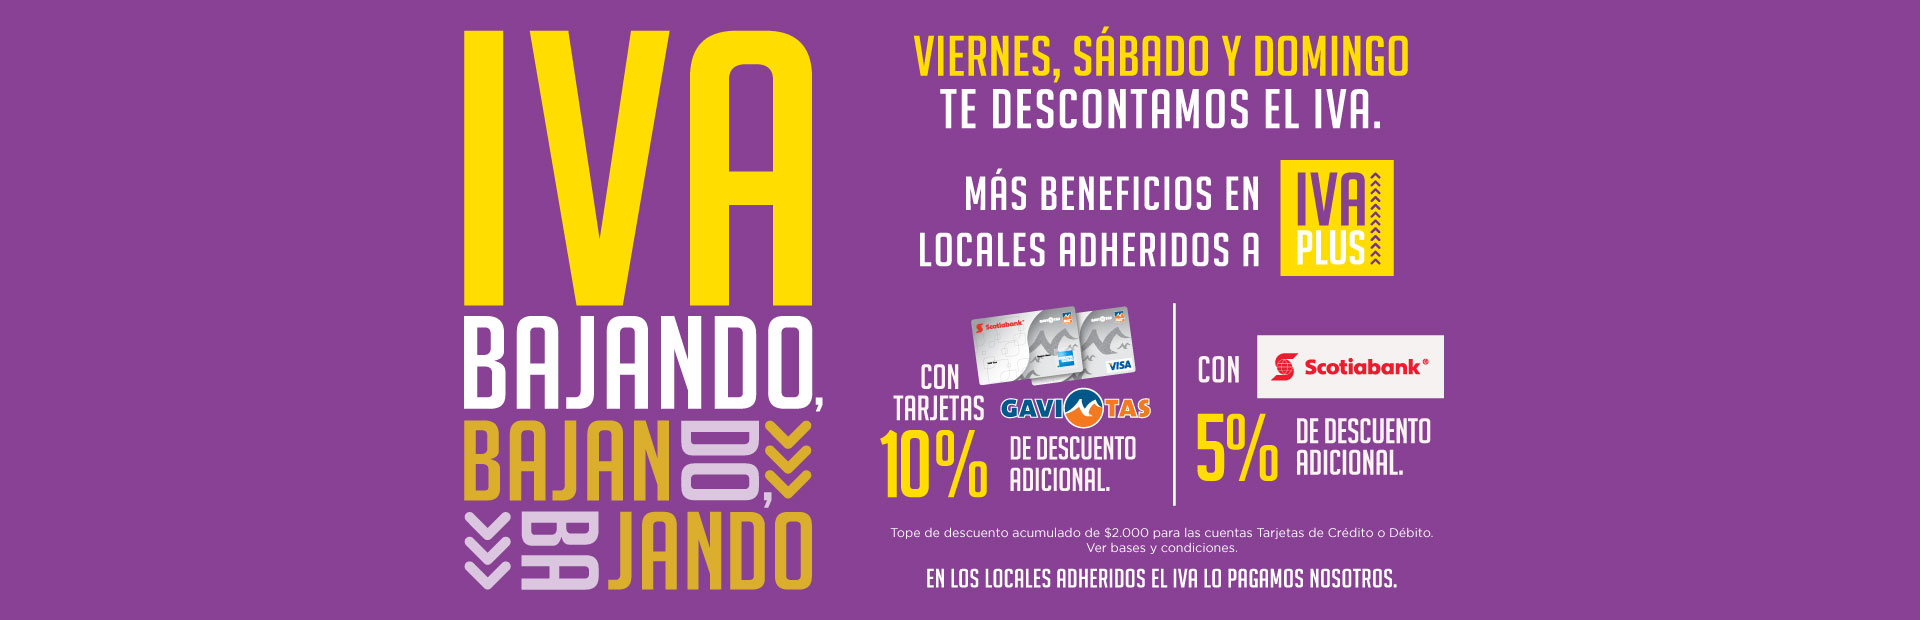 descuento iva montevideo shopping